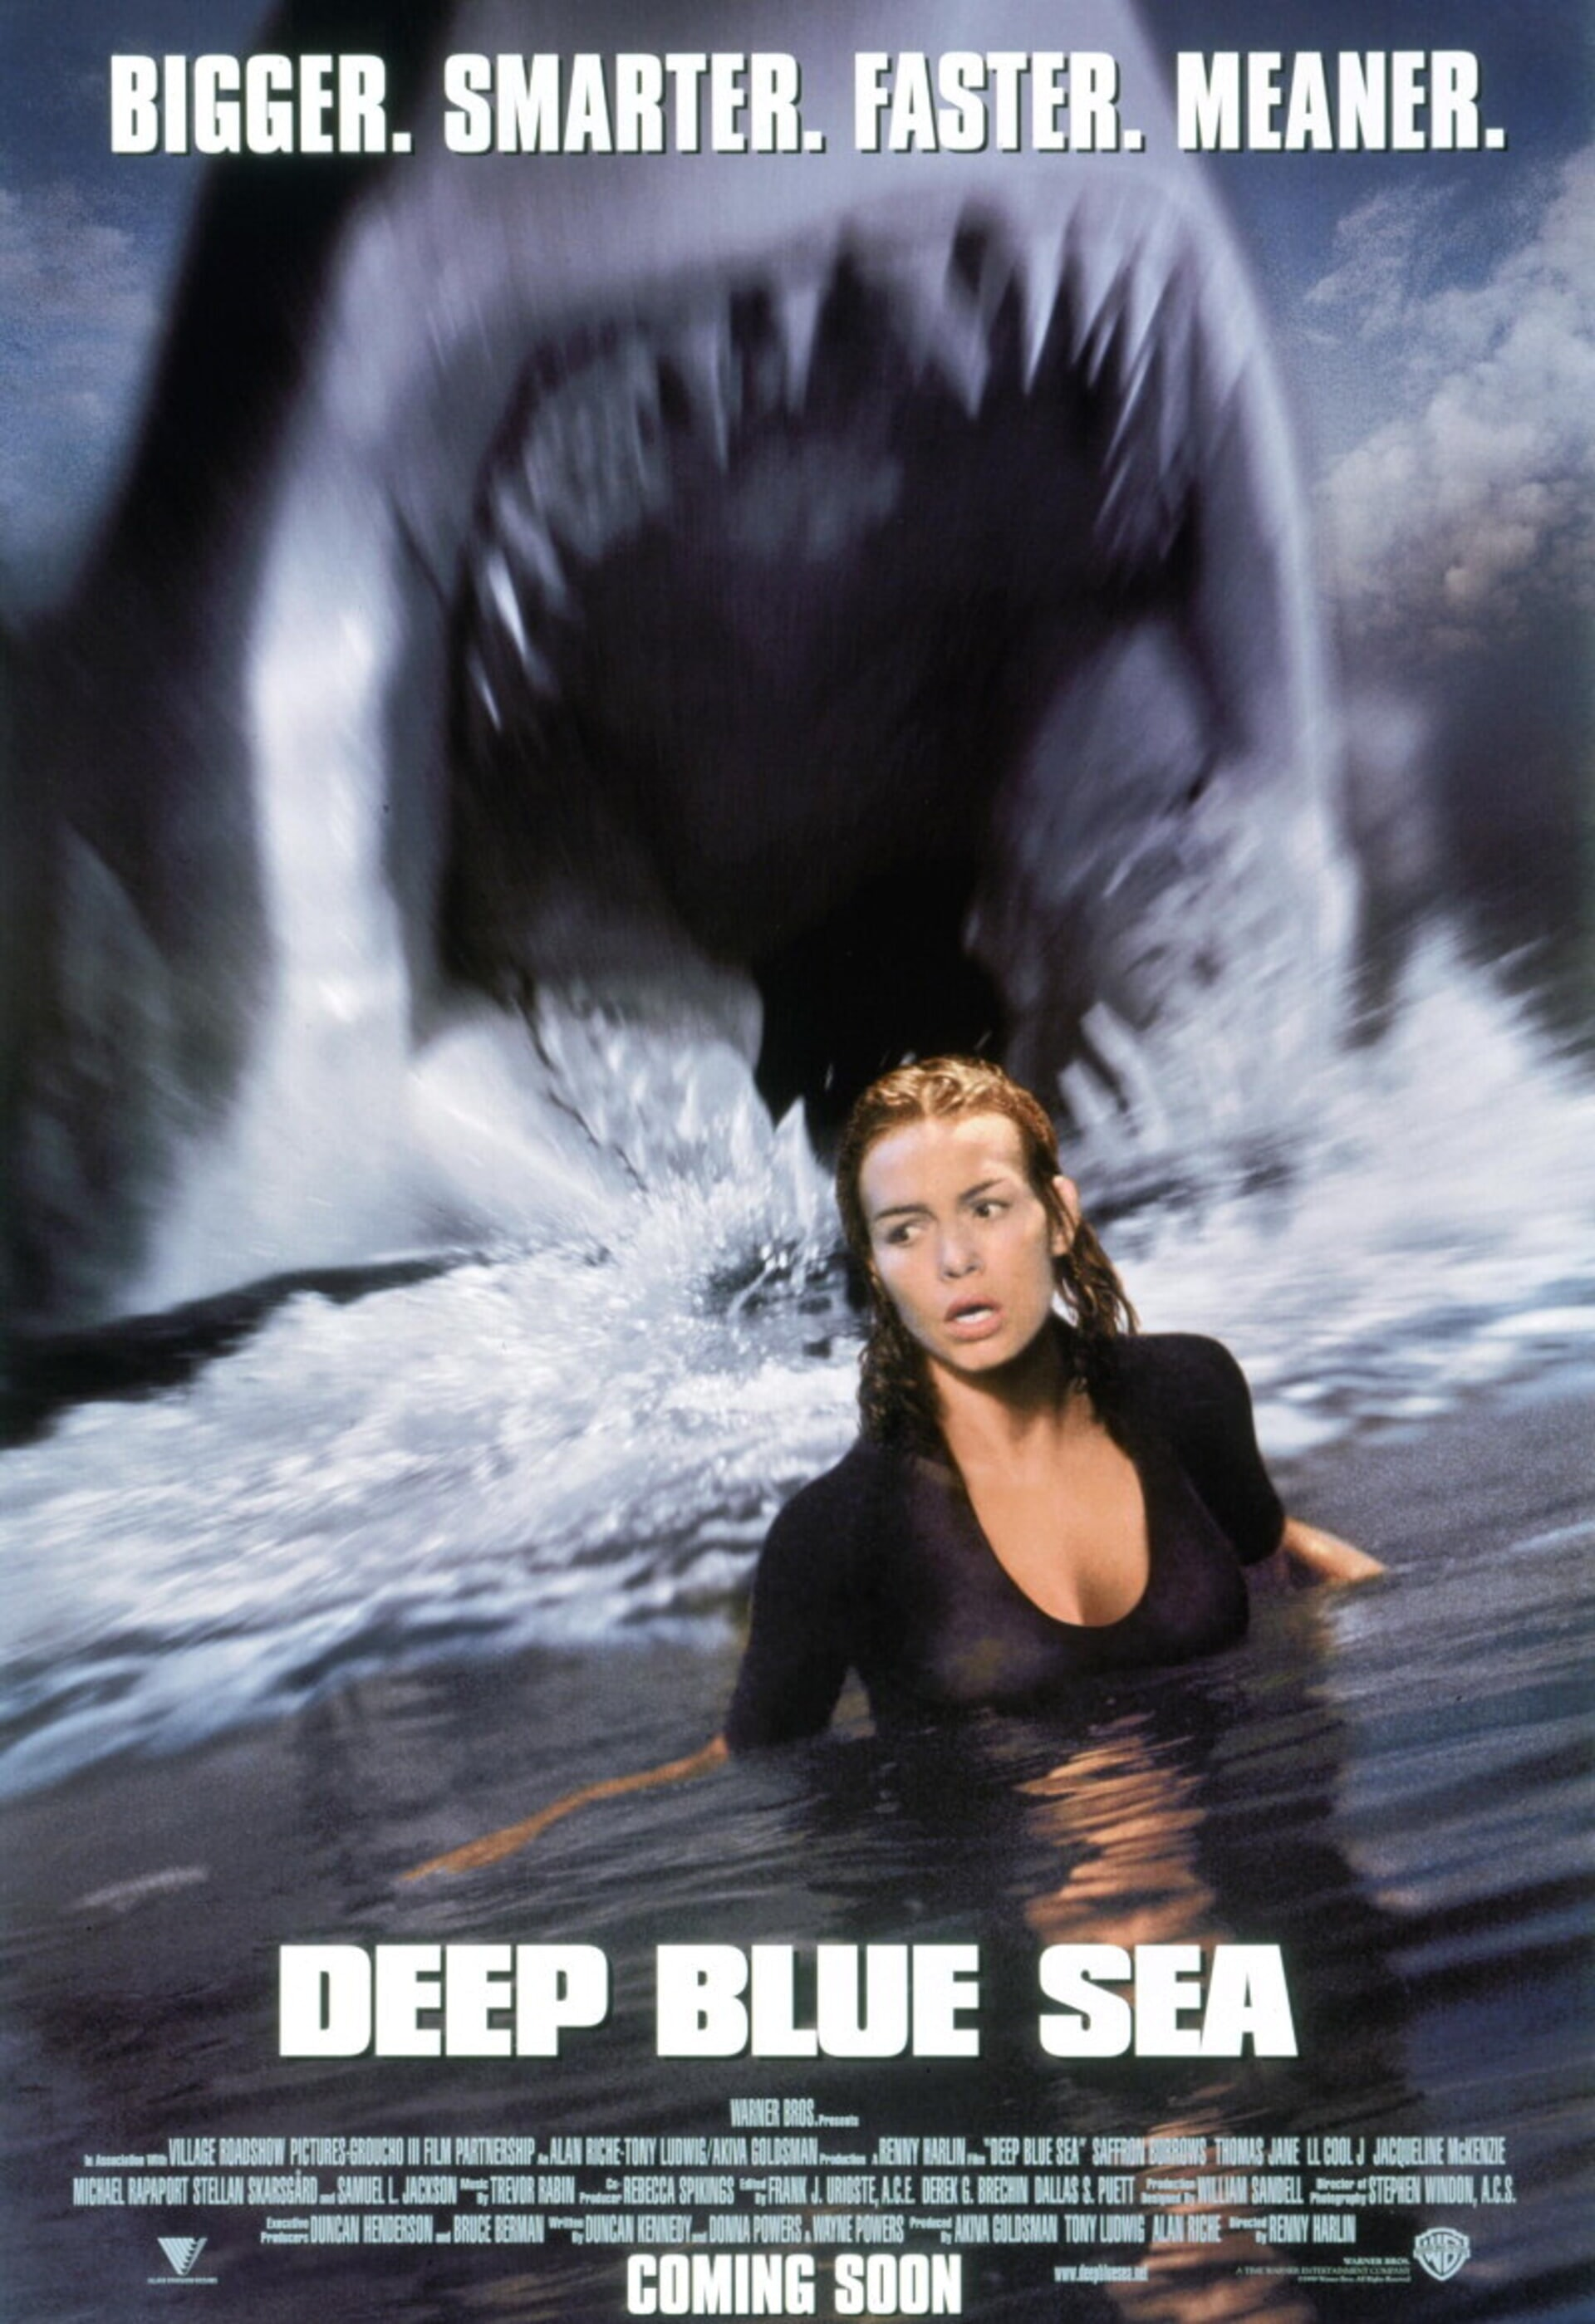 Deep Blue Sea - Poster 1